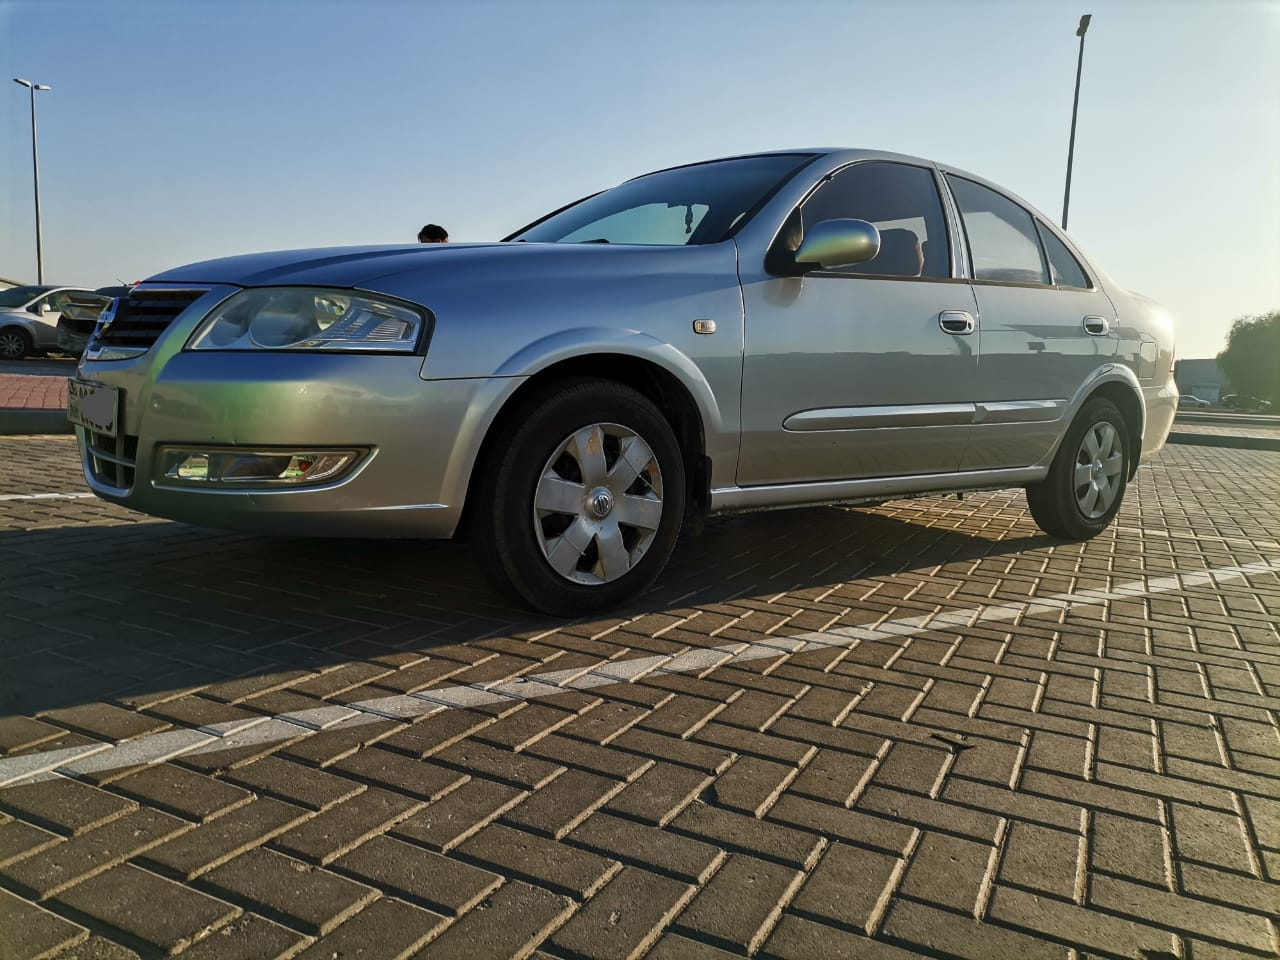 Used Nissan Sunny 2012 For Sale In Dubai